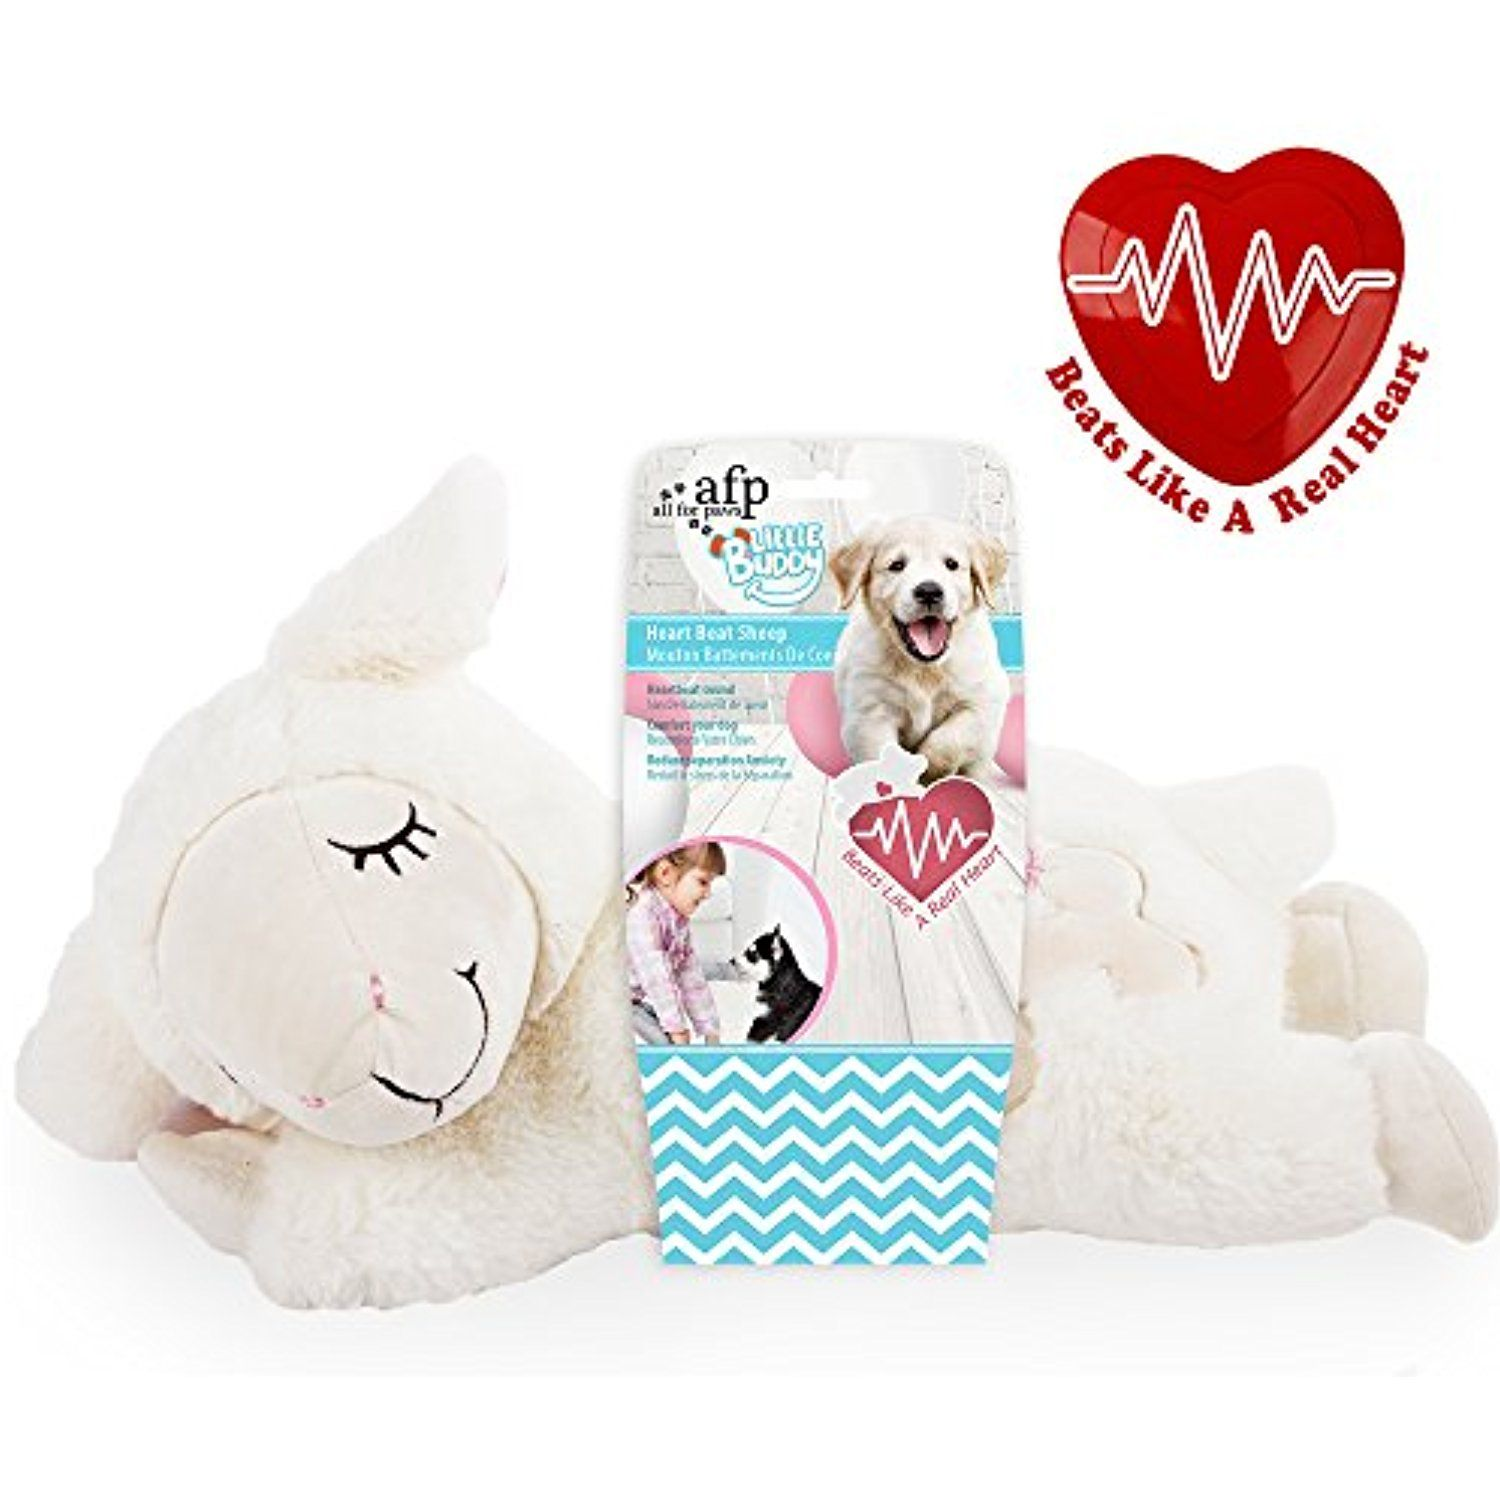 Afp Snuggle Sheep Pet Behavioral Aid Toy Warm Plush Toy Check